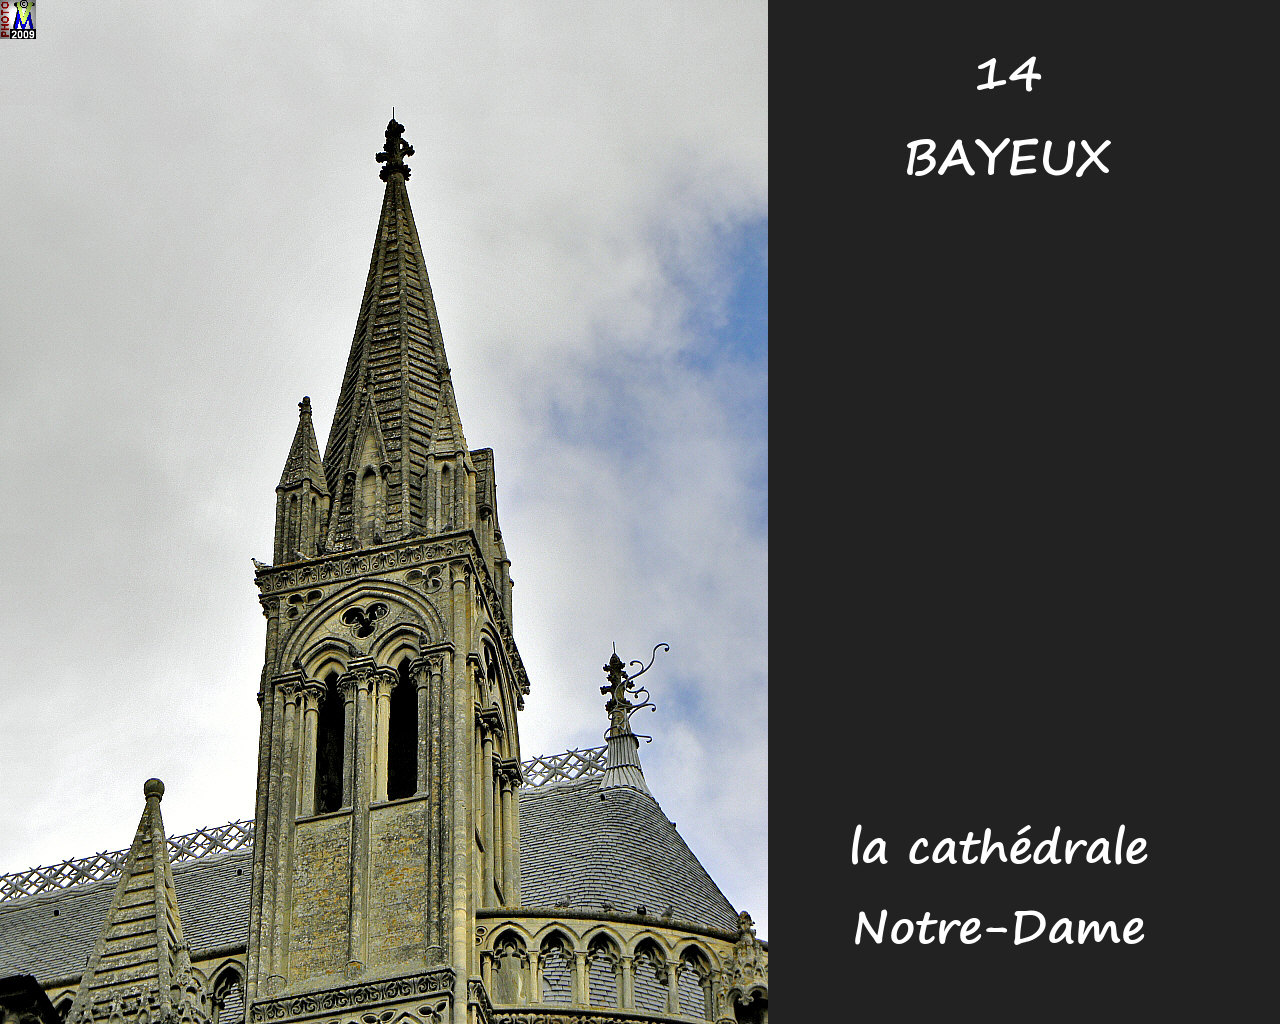 14BAYEUX_cathedrale_114.jpg